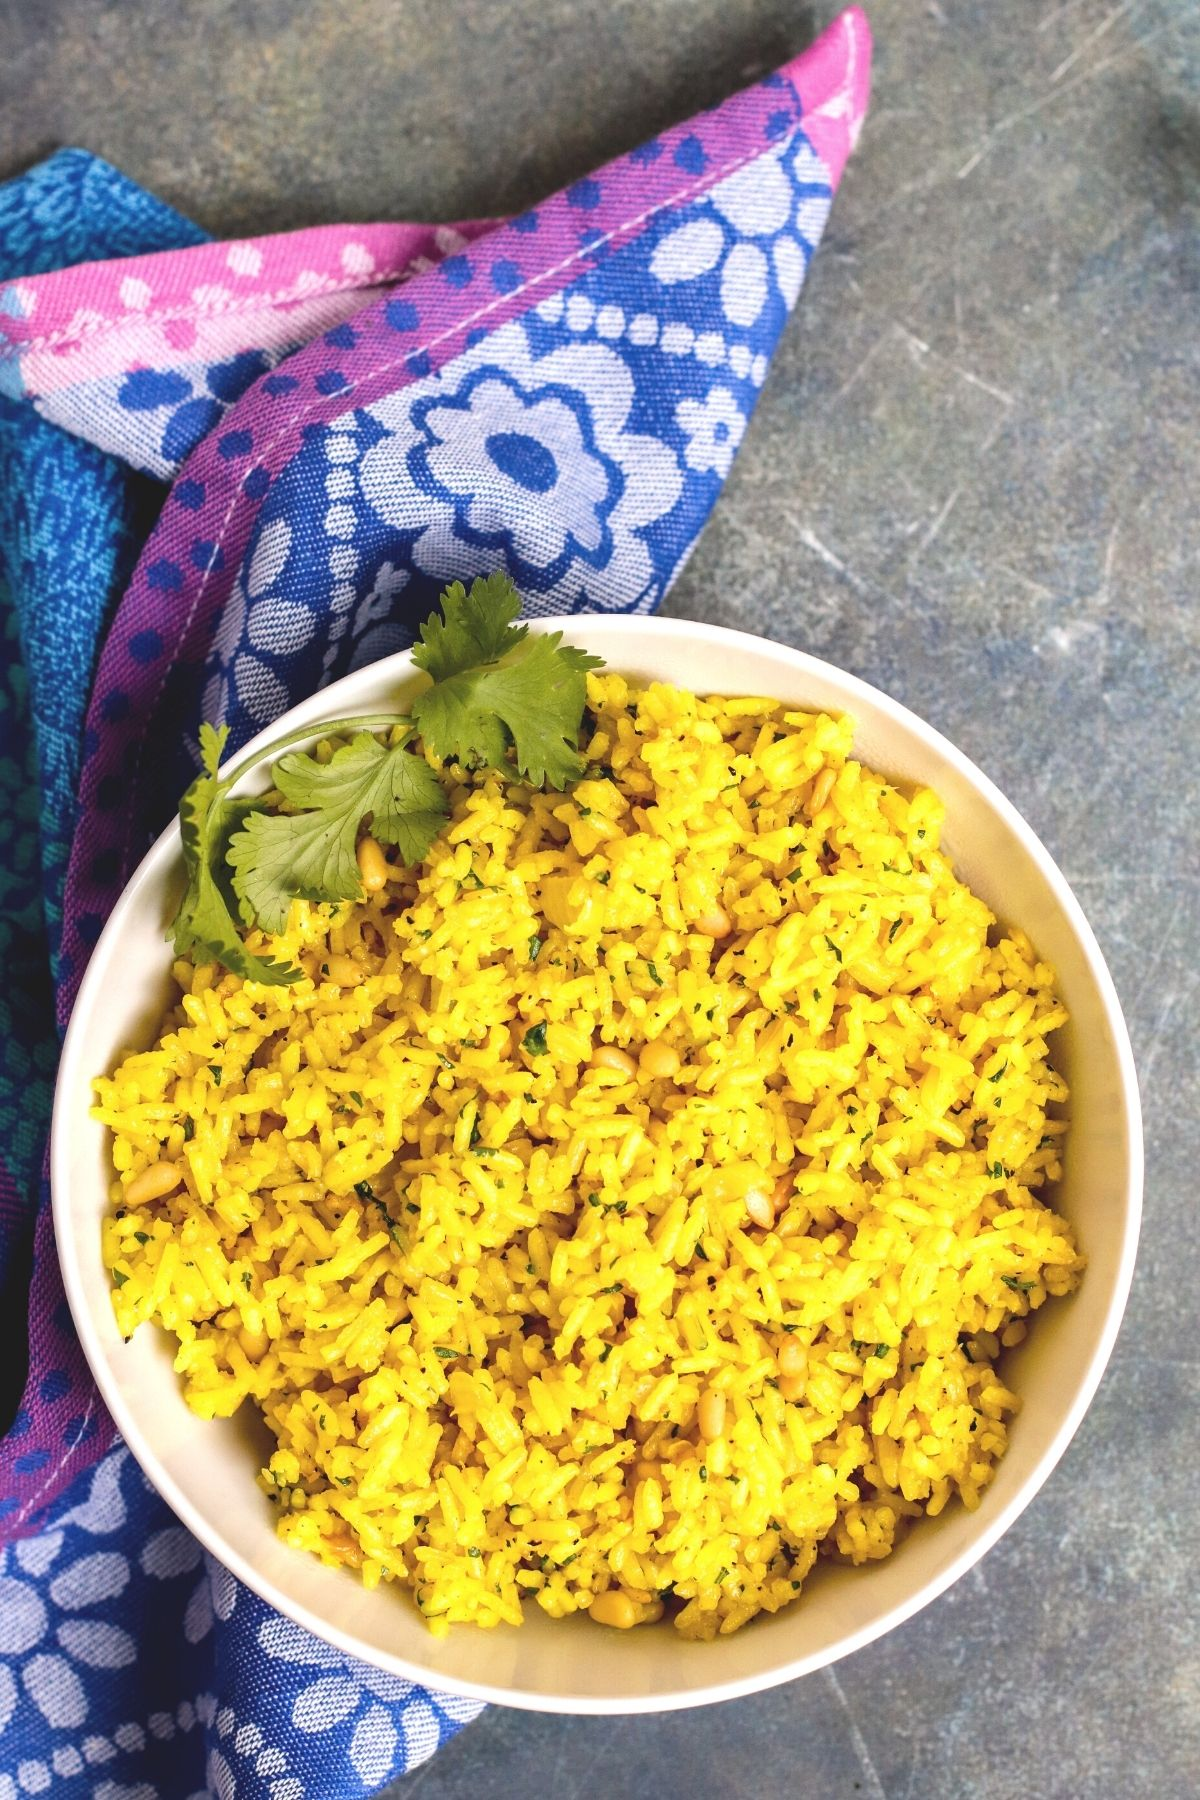 Overhead of bowl of turmeric rice and blue floral napkin